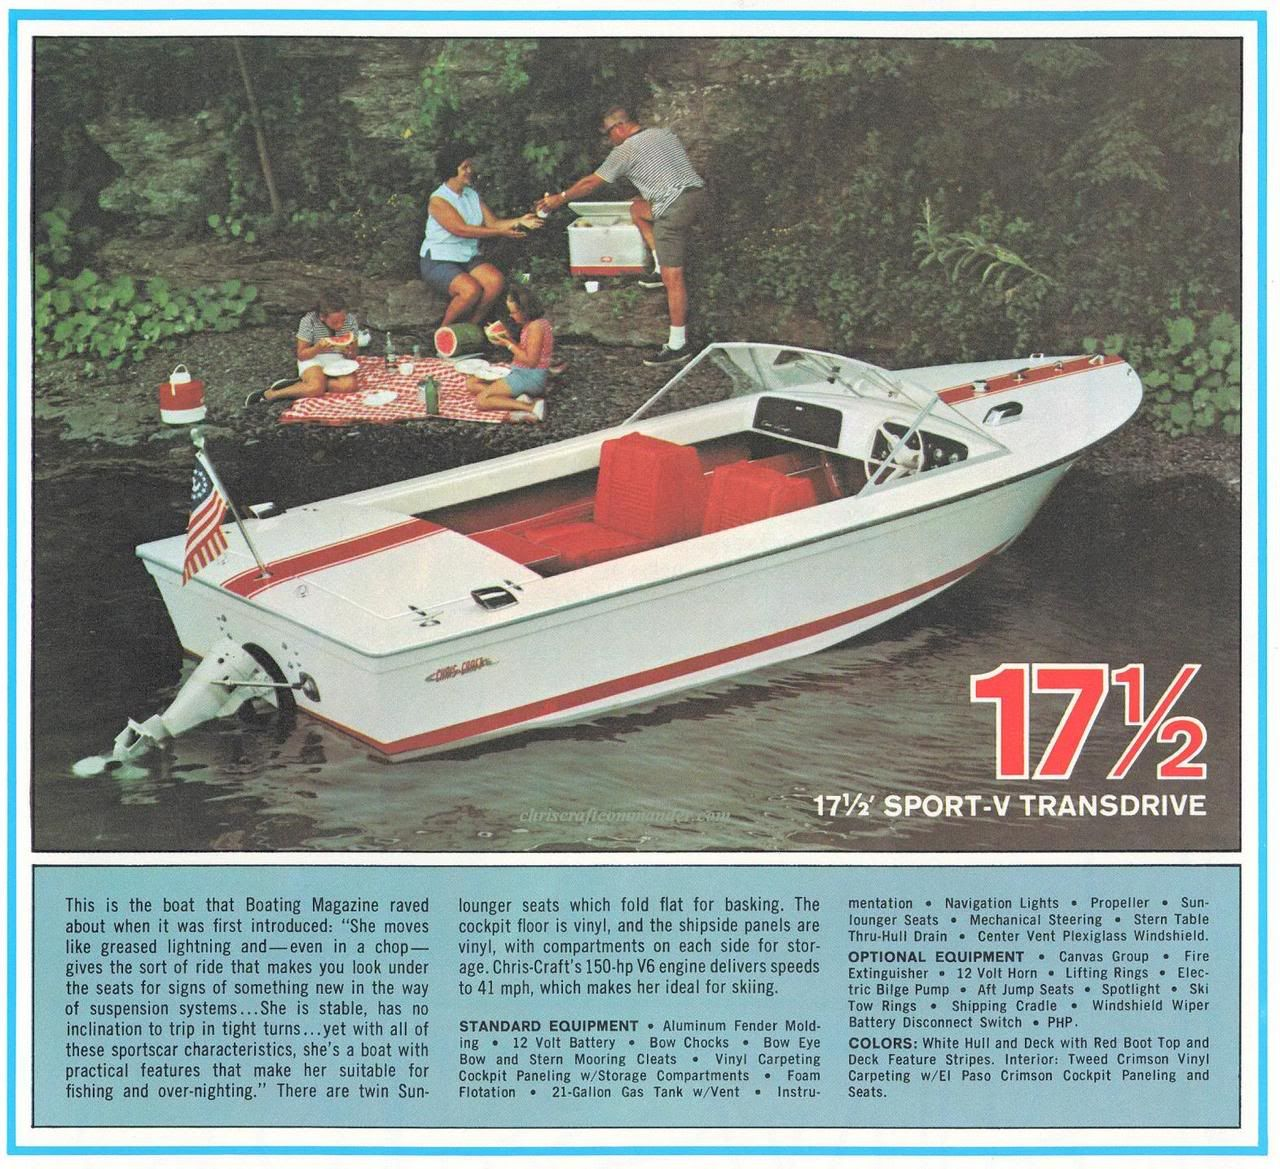 1968 Corsair 17 1 2 Sport V Transdrive 1081 Total Boats Built 1963 1968 150 Of Them In 1968 Length 17 9 Beam 7 5 Boat Free Boat Plans Chris Craft Boats